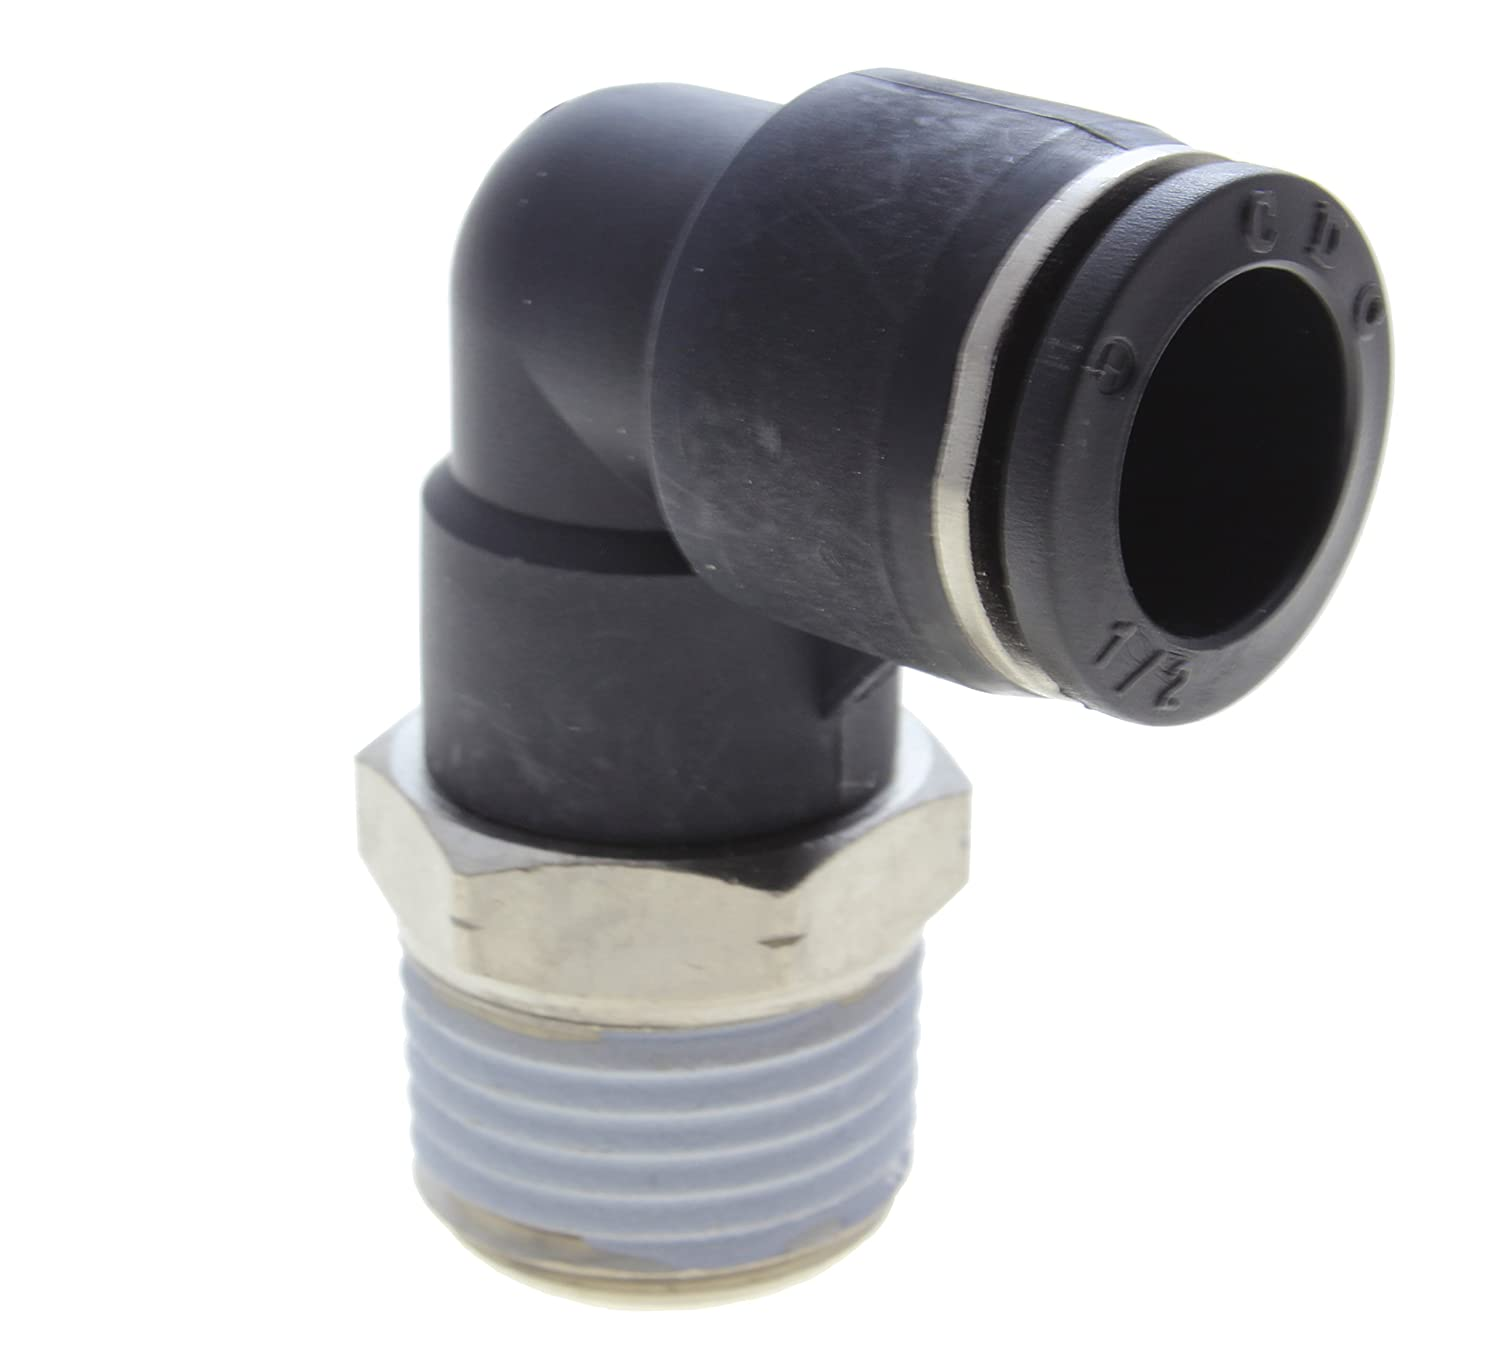 Tube x 1//4 Male NPT 5//32 CDC Pneumatics Male Swivel Elbow Male TechniFit PL5//32-N2 Tube x 1//4 Male NPT Pbt Resin Pack of 10 5//32 Pack of 10 Push-to-Connect Fitting